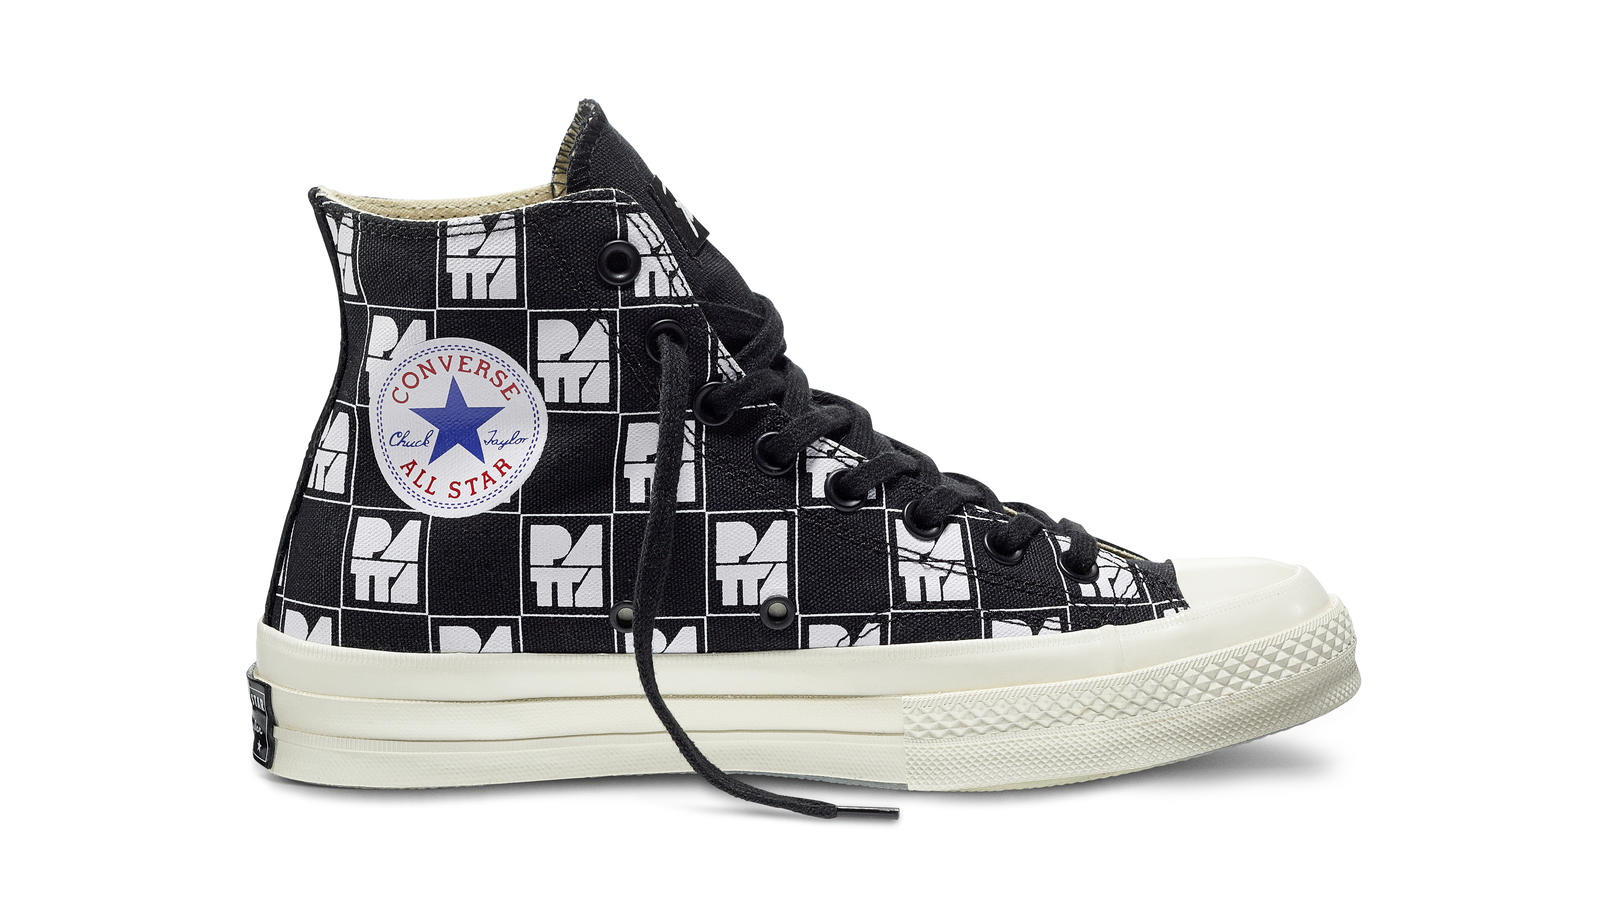 Converse All Star Ct70 Patta10 Black White Original